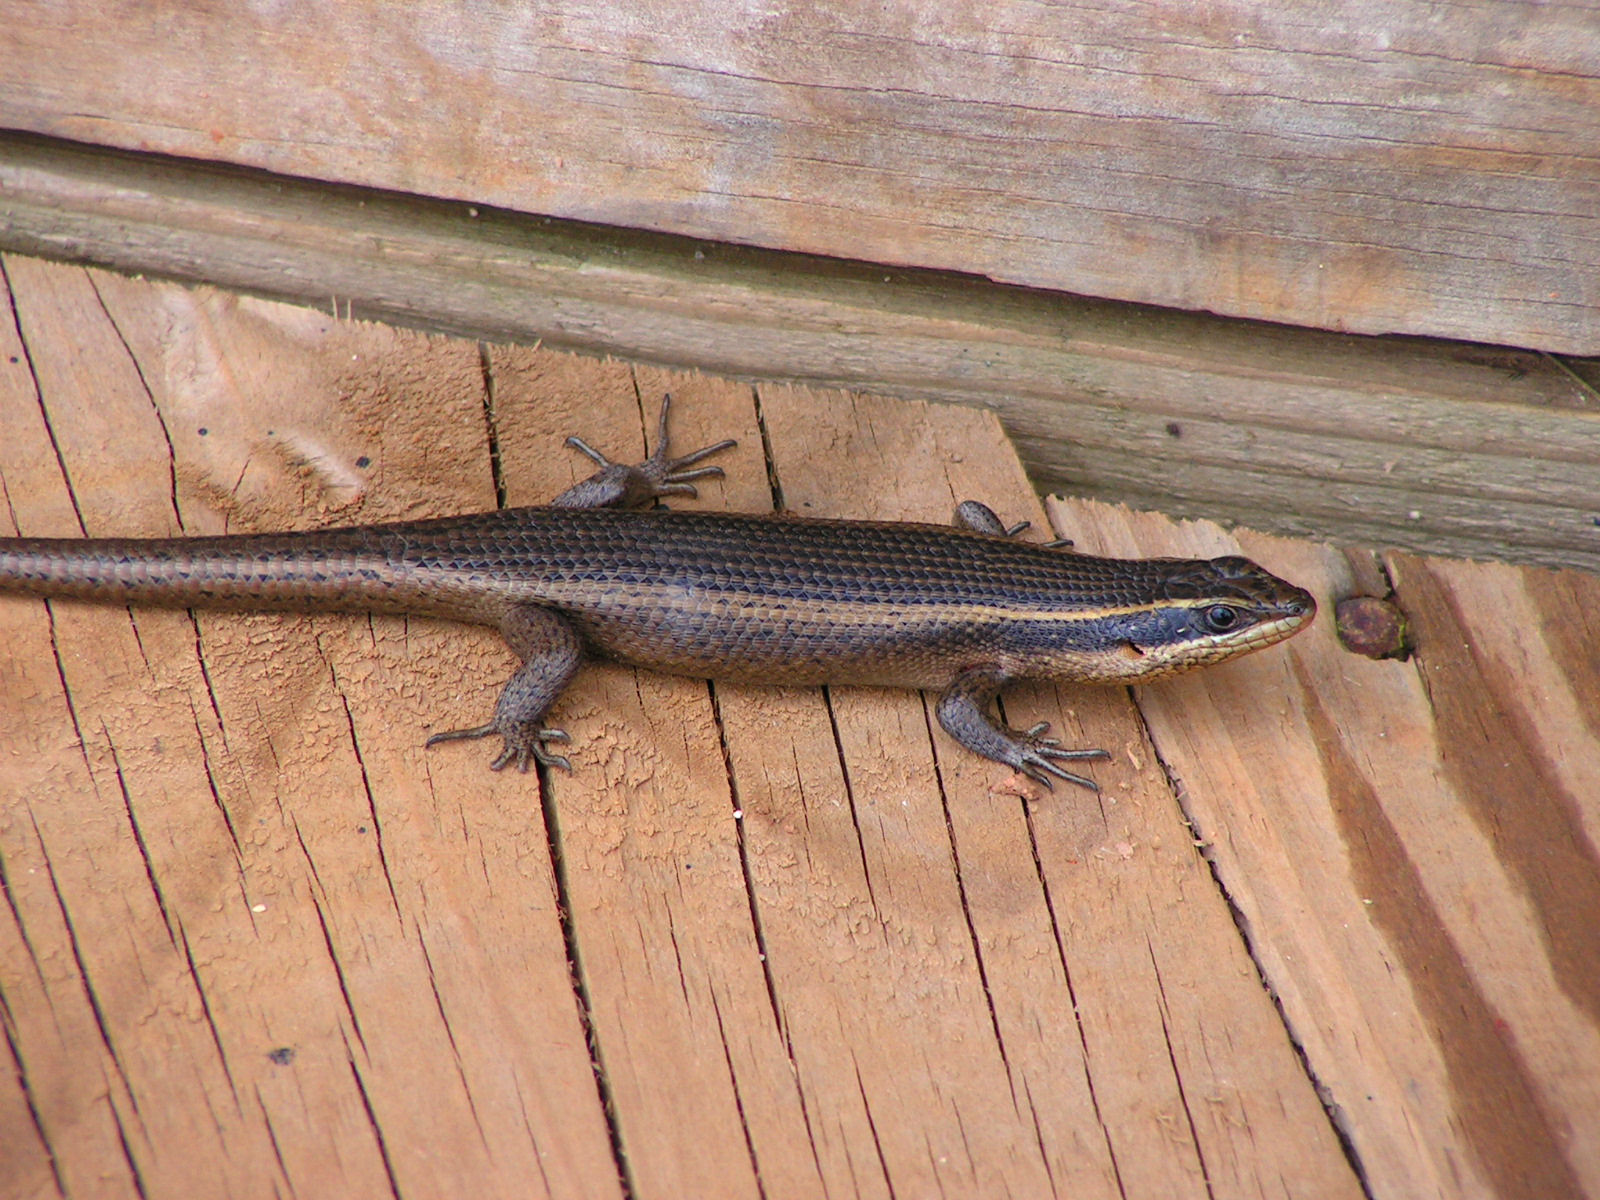 File:Striped skink.jpg